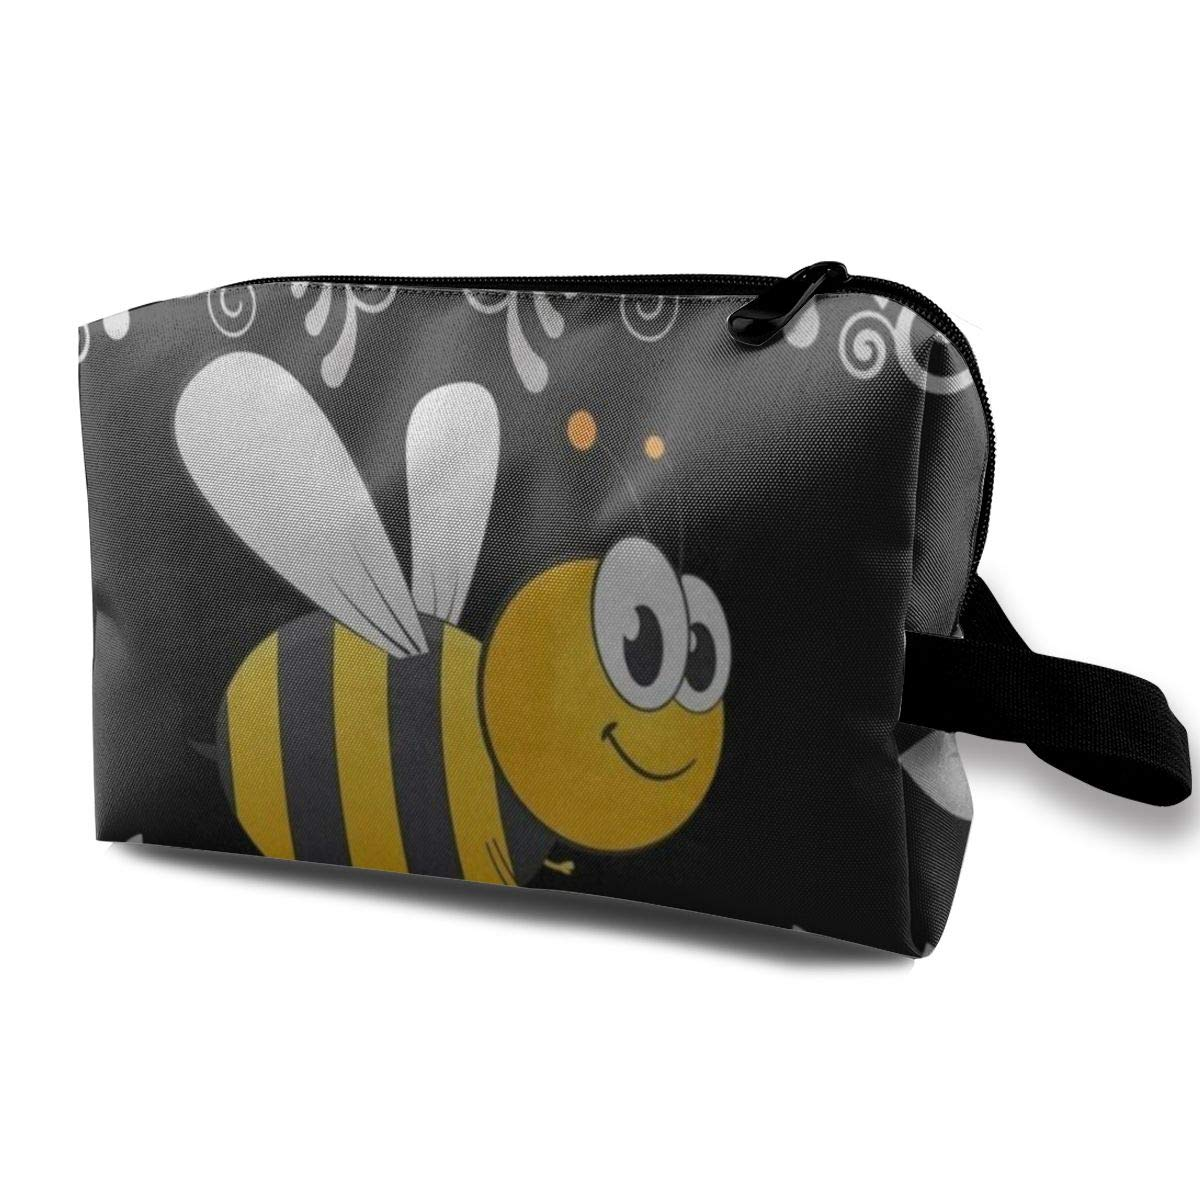 Small Cute Make up Pouch for Purse Makeup Brushes Bag Mini Travel Cosmetic Bag (Bumble Bee)